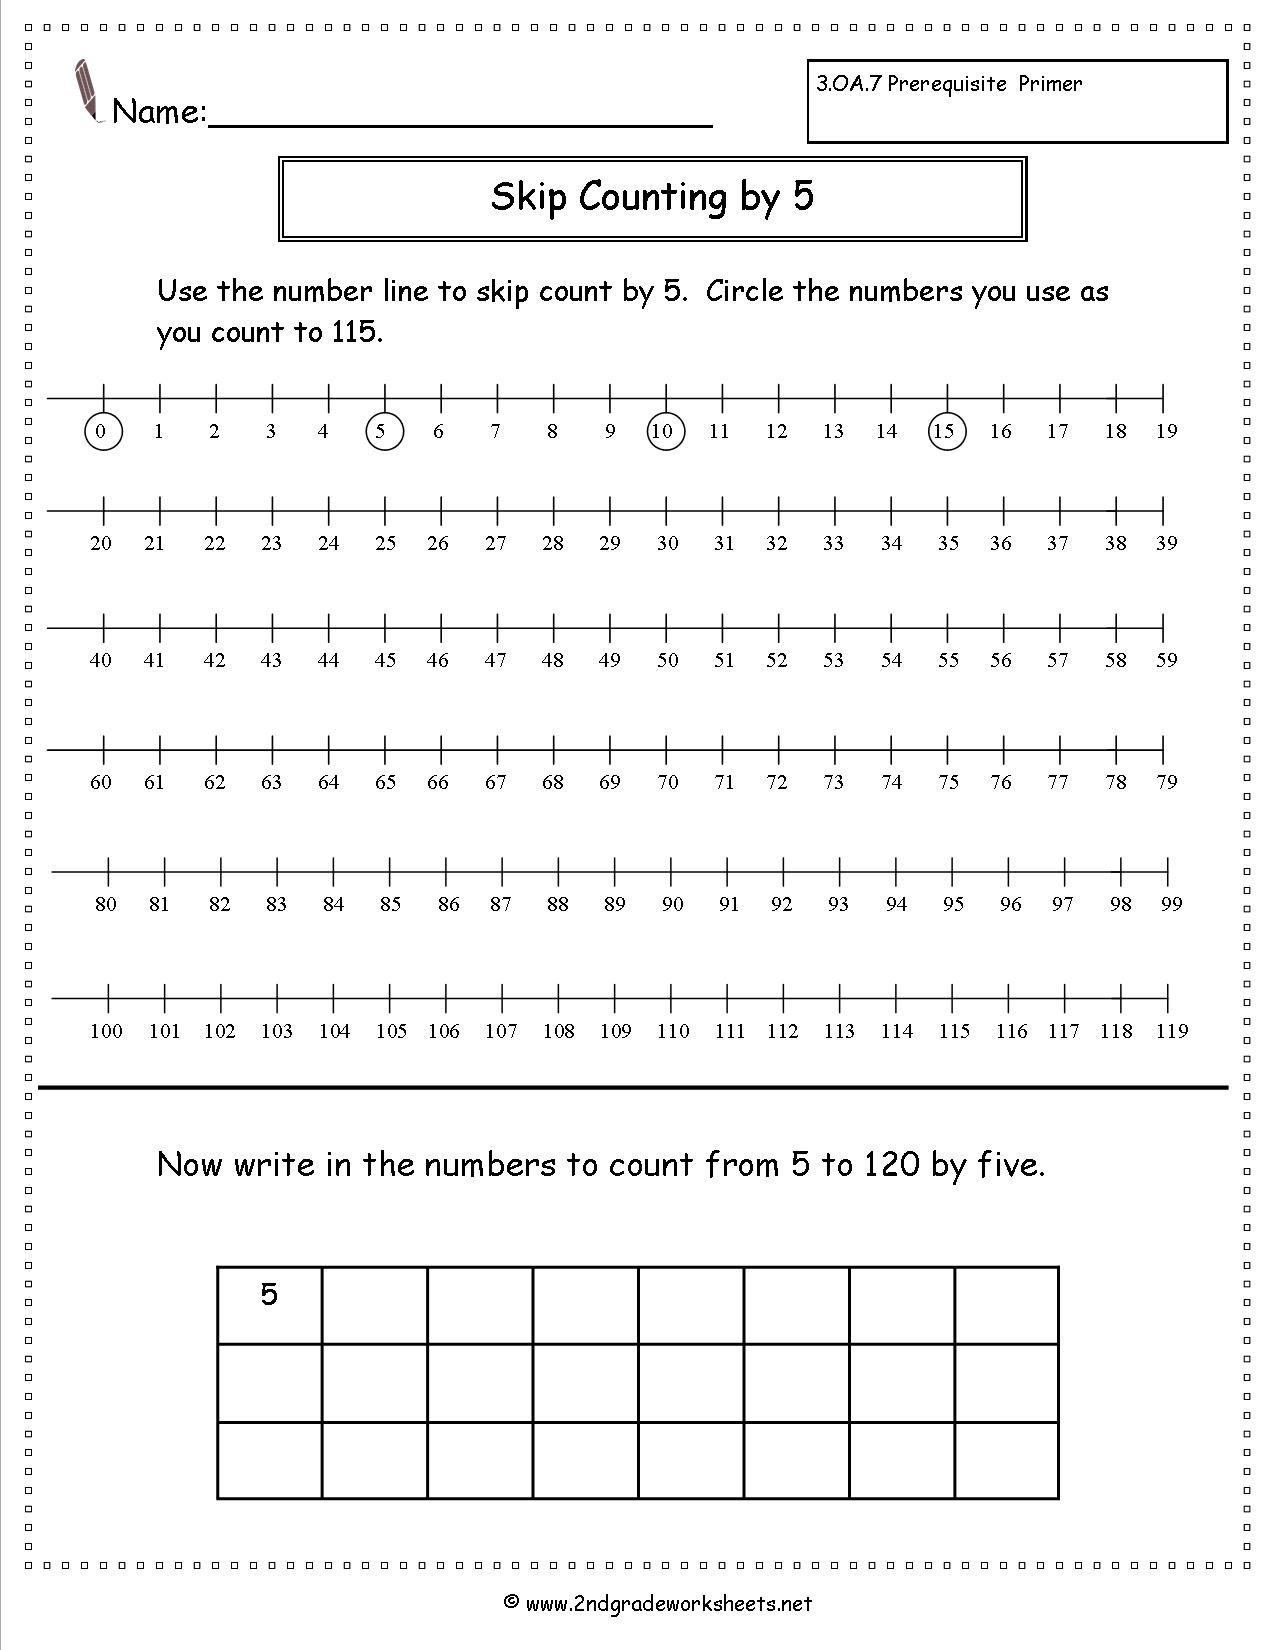 Free Skip Counting Worksheets | Skip Counting By 3 Printable Worksheets